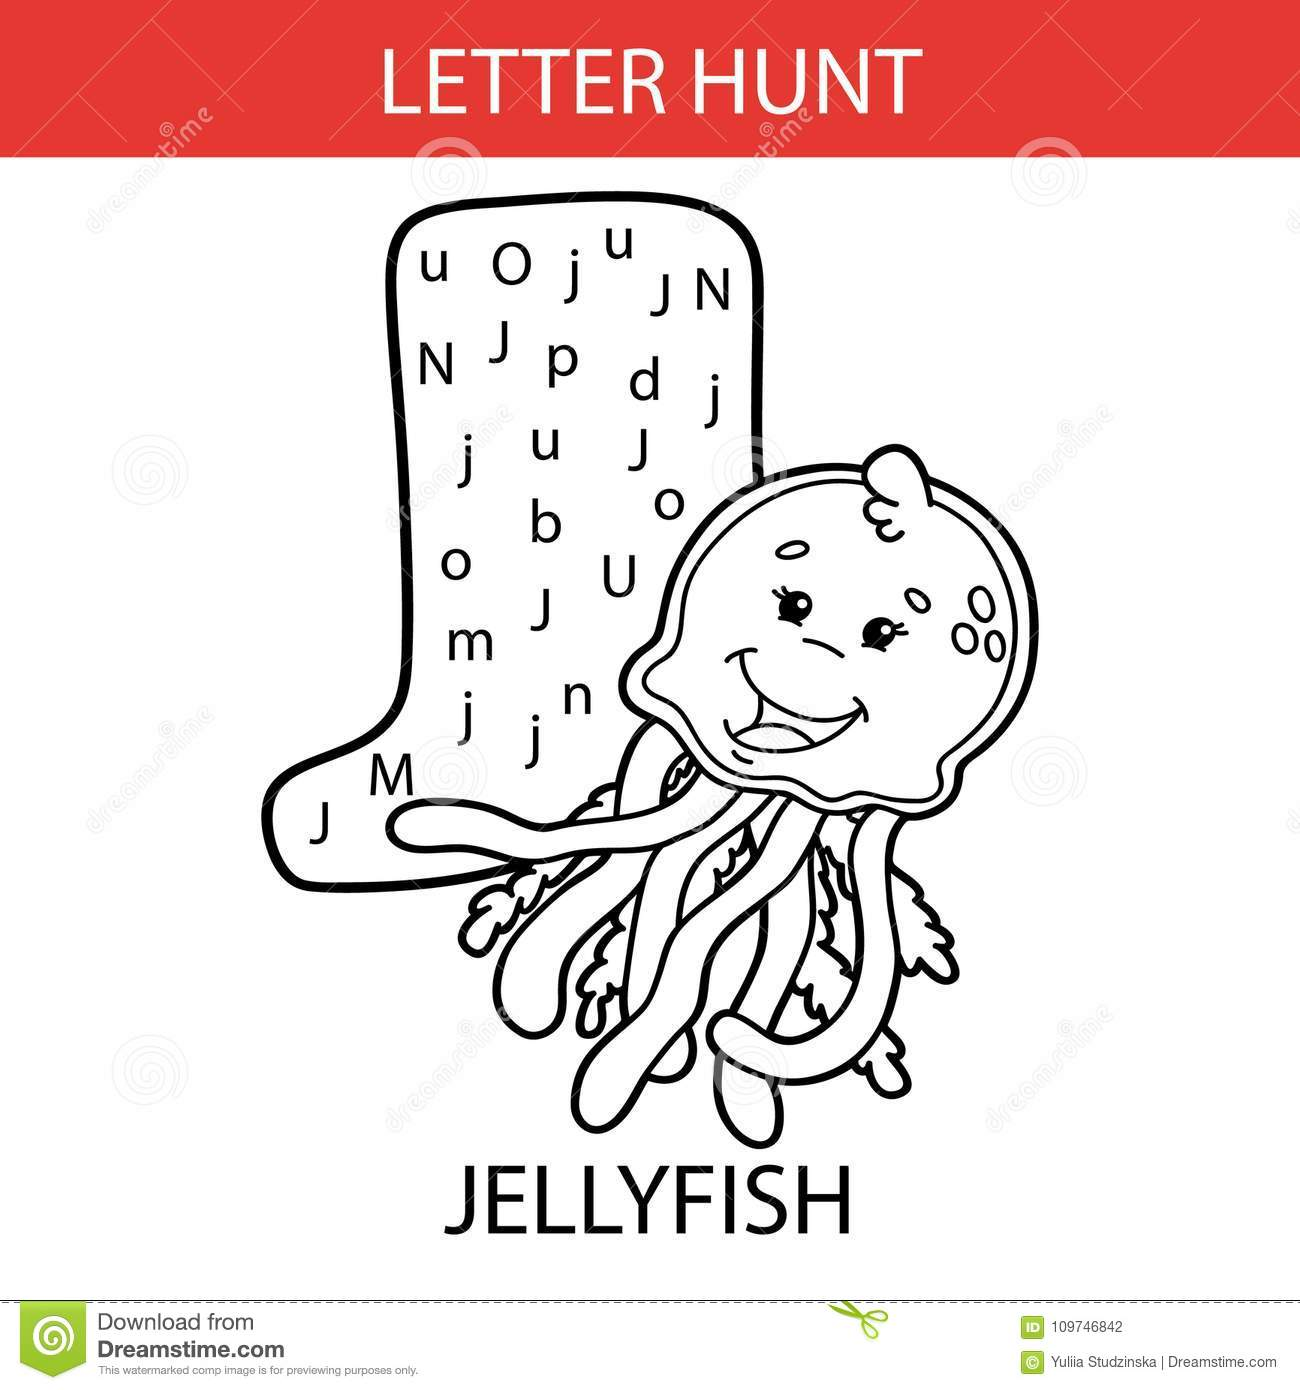 Animal Letter Hunt Jellyfish Stock Vector